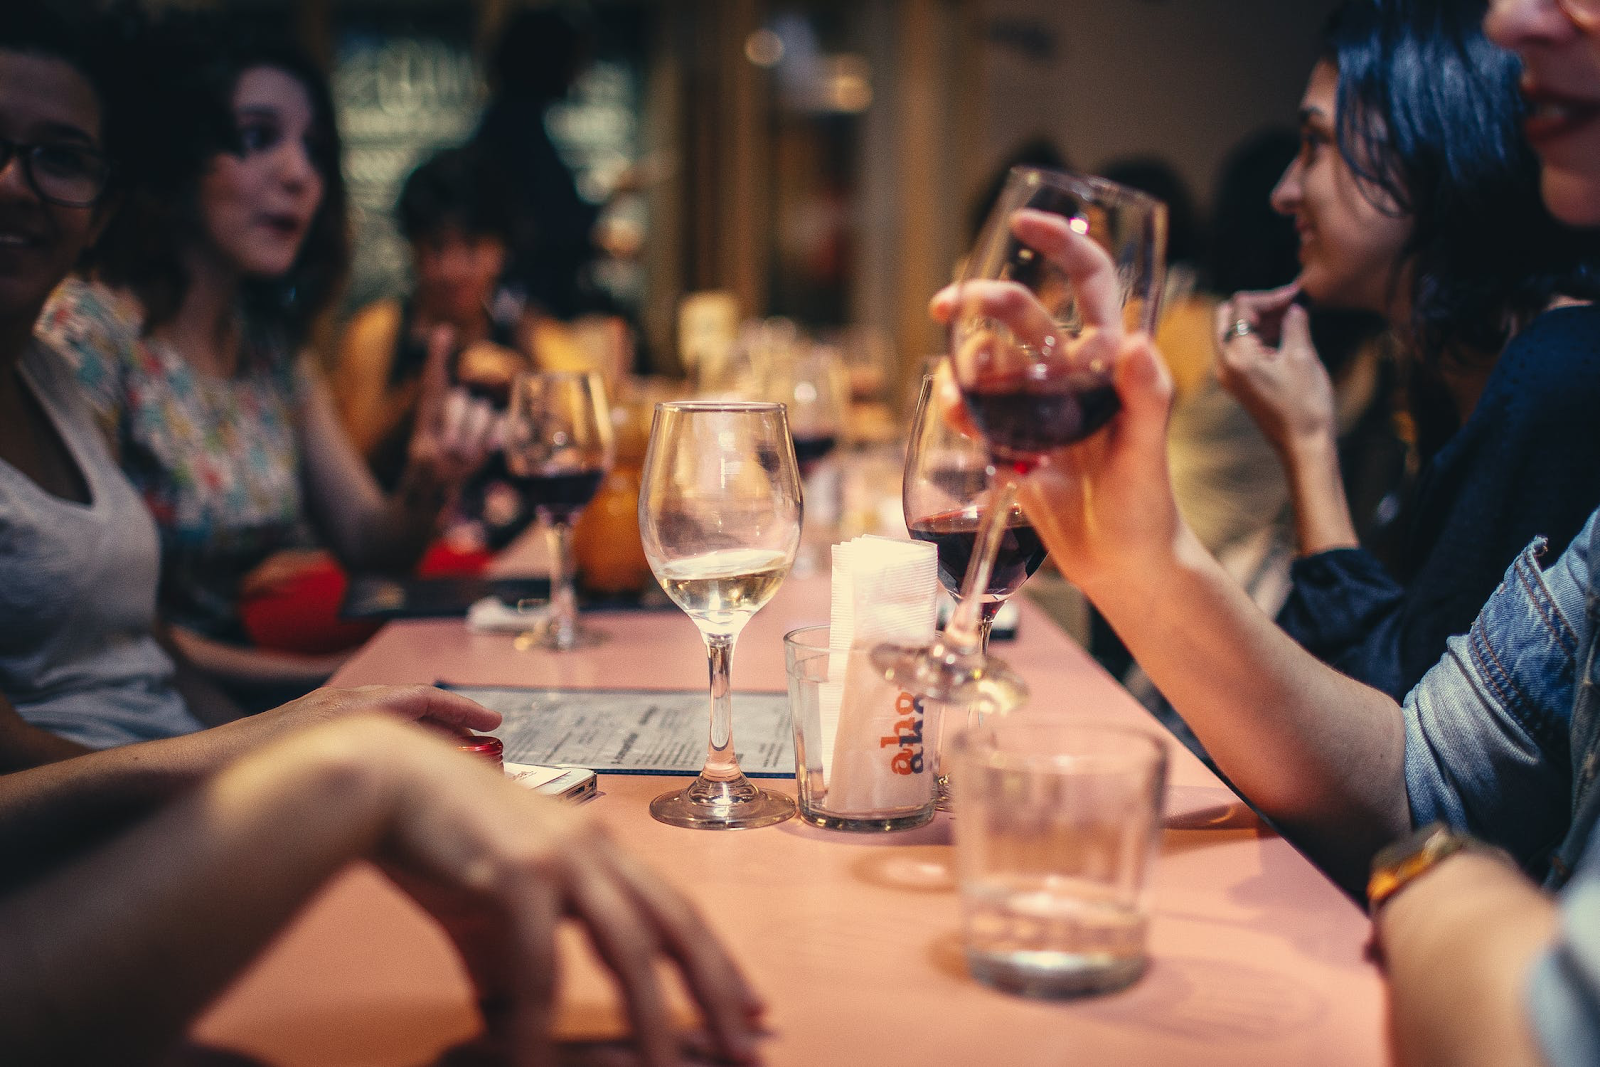 Friends enjoy drinks and food at happy hour